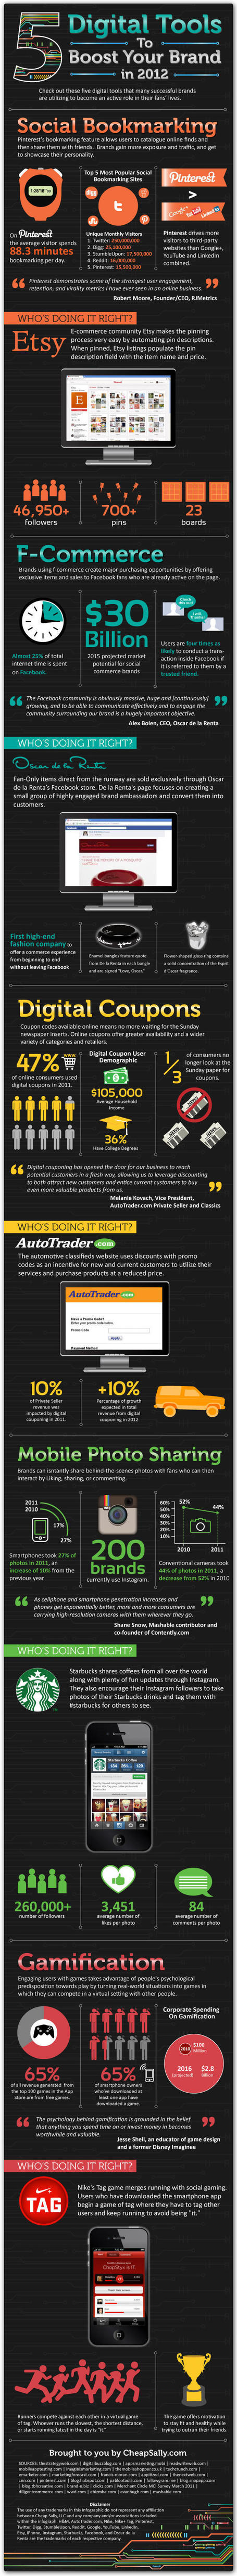 5 Digital Tools to Boost Your Brand in 2012 Infographic | Resources and trend analysis for authors, webcopy writers and web developers | Scoop.it